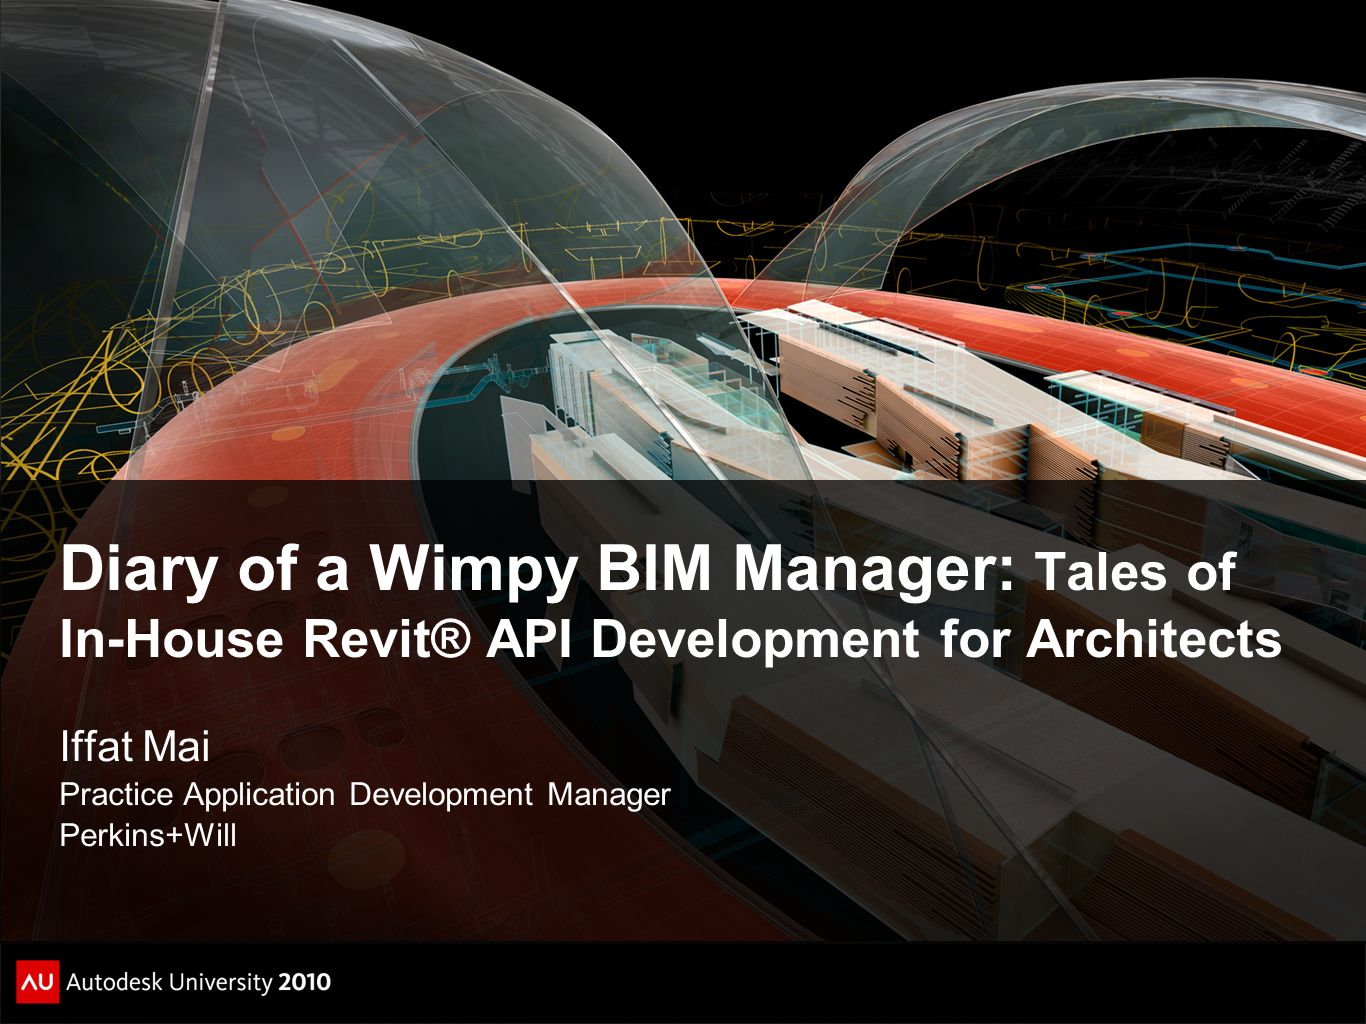 Diary of a Wimpy BIM Manager: Tales of In-House Revit® API Development for Architects